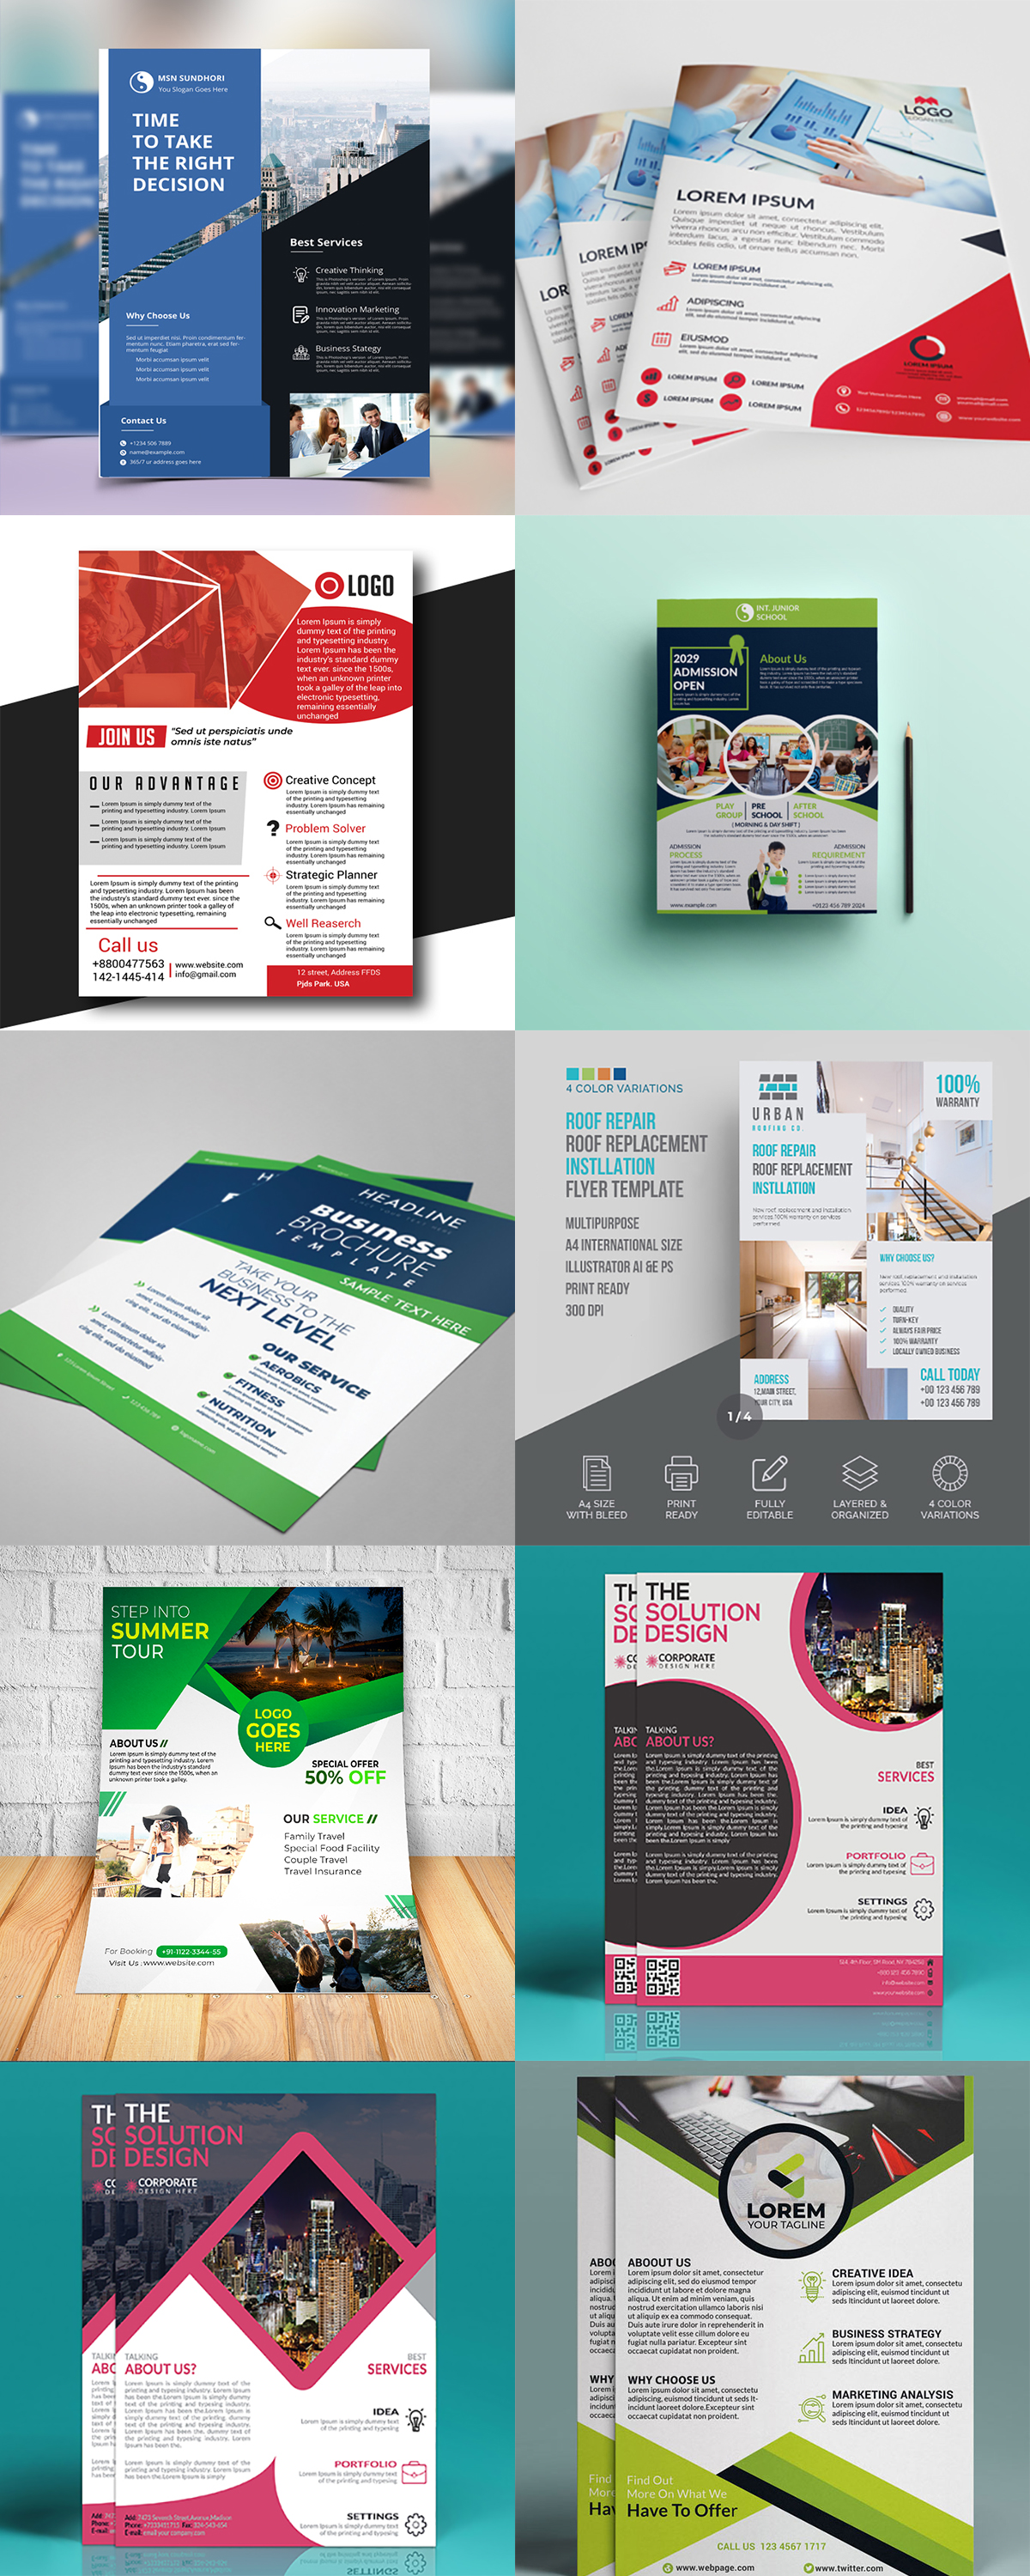 120 Concert Flyer Templates Bundle with Extended License - images 1